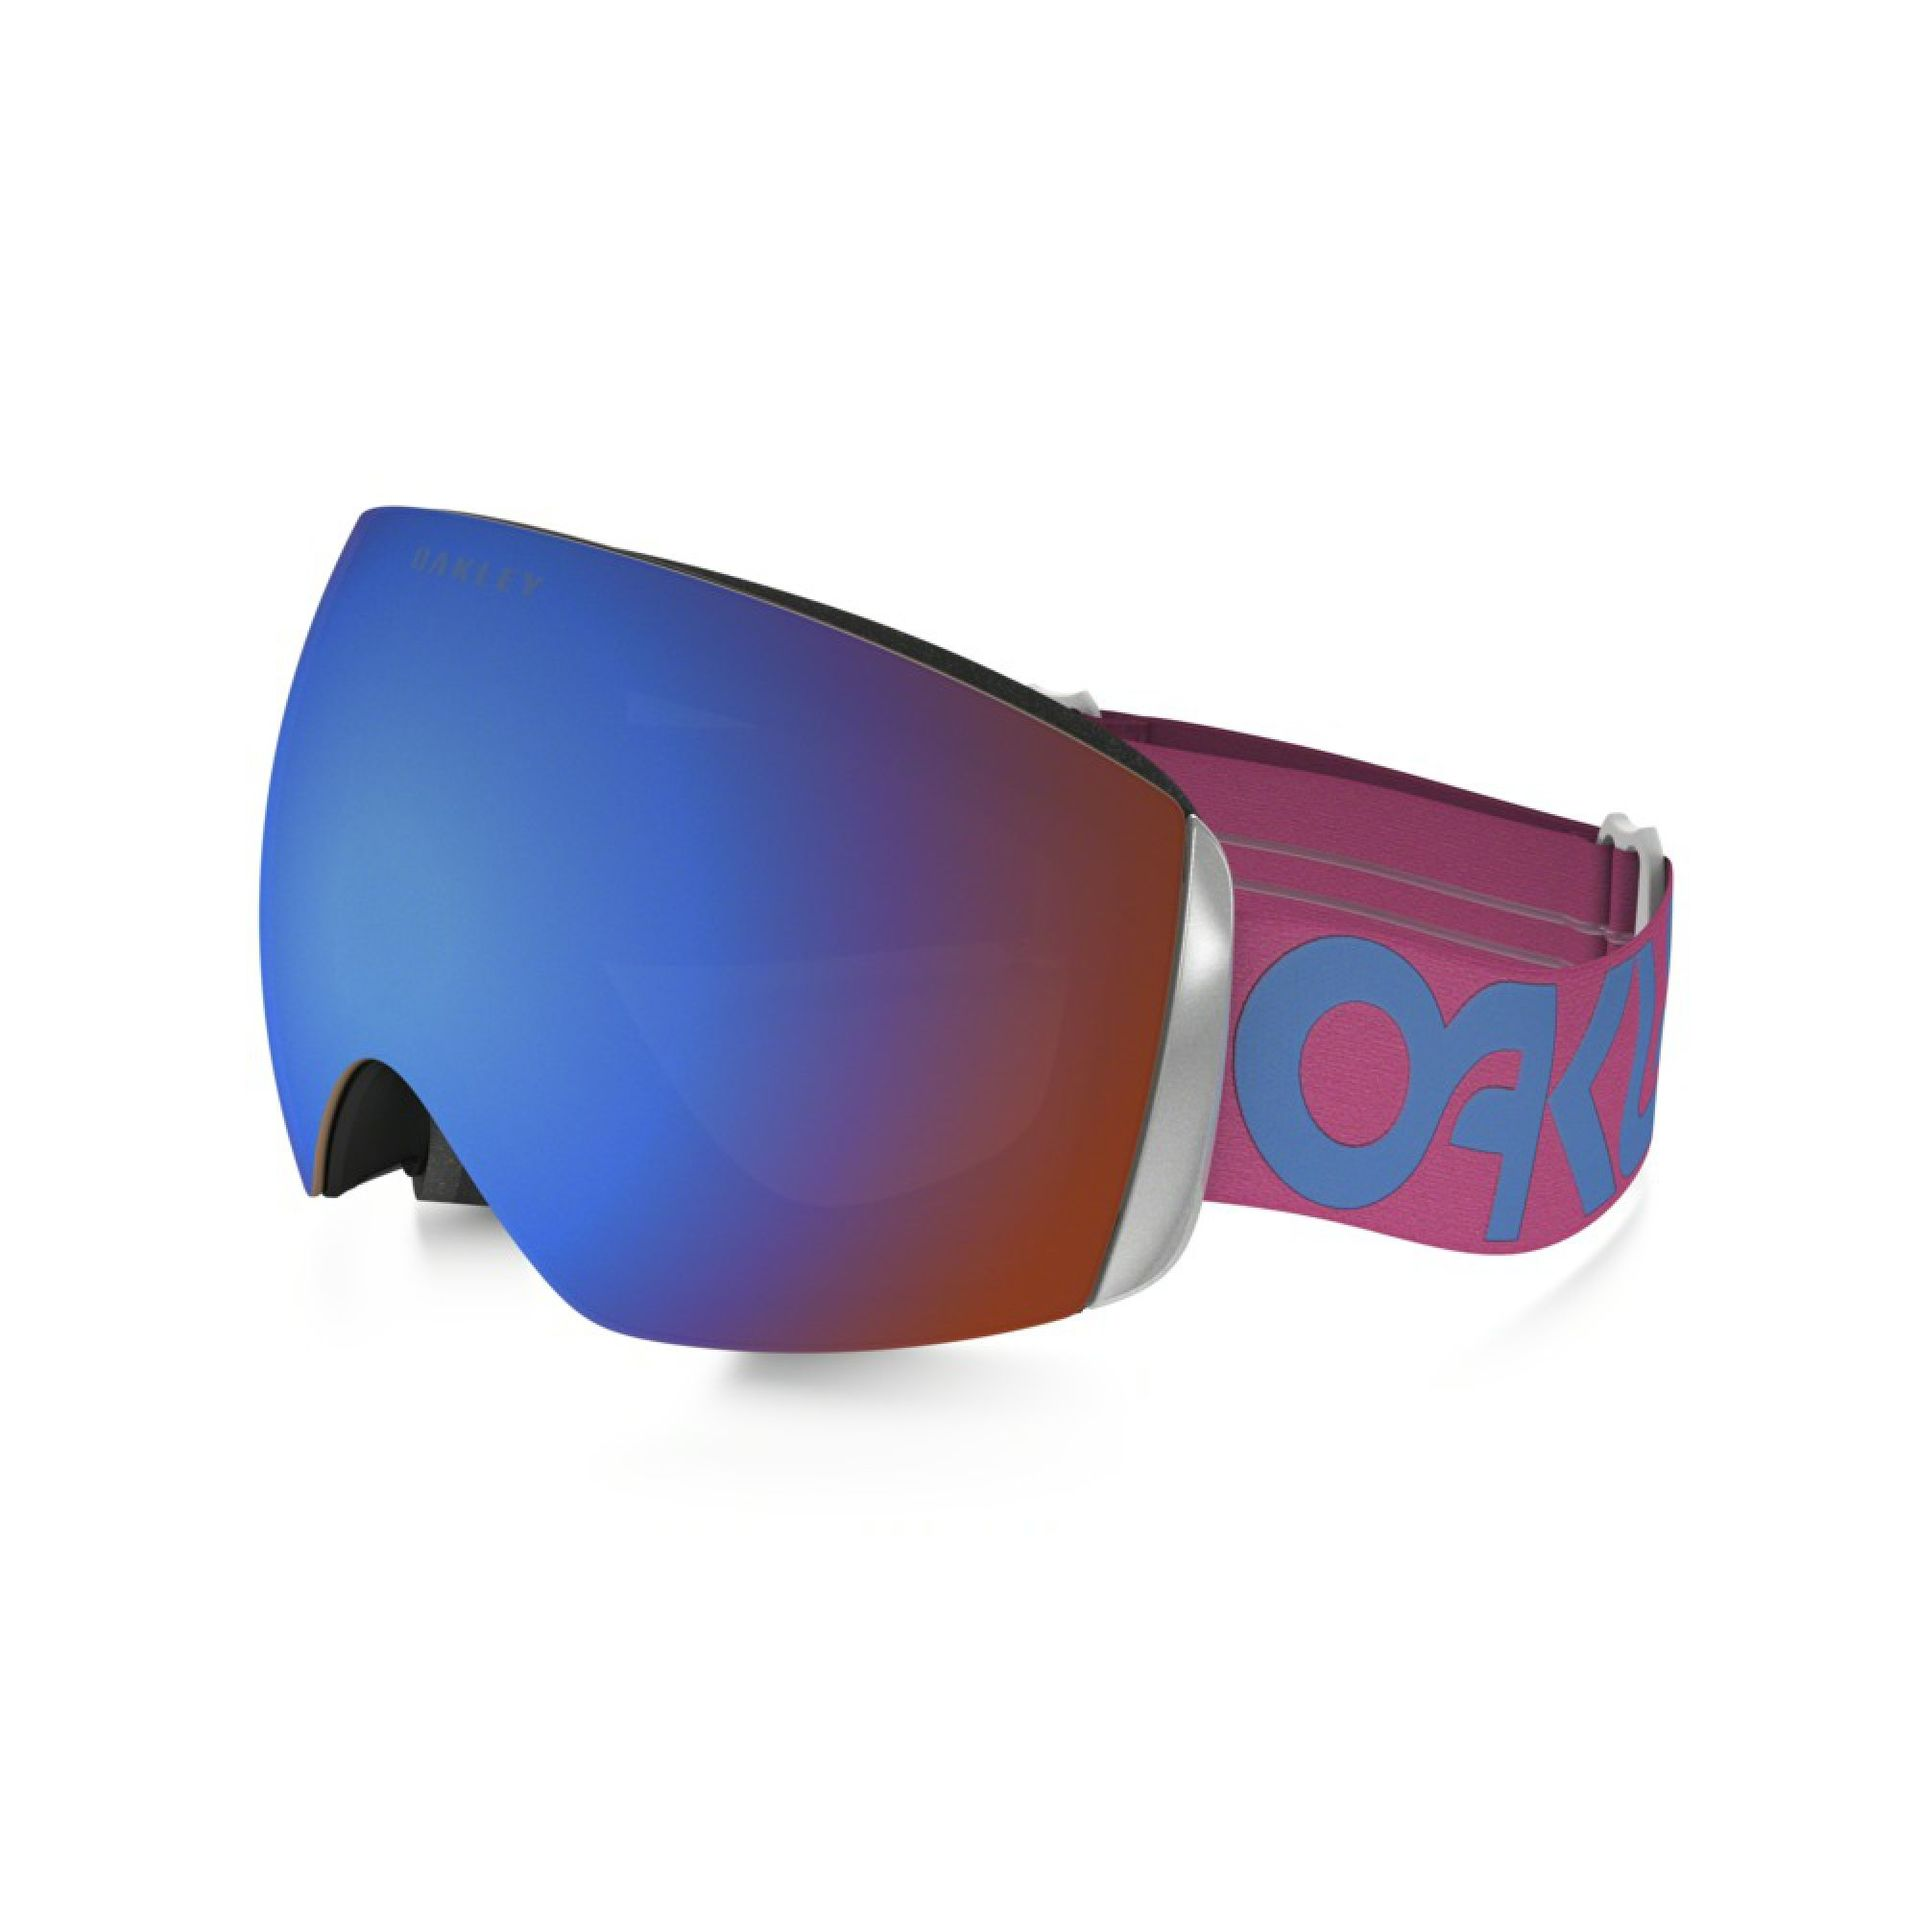 GOGLE OAKLEY FLIGHT DECK XM FACTORY PILOT PINK BLUE PRIZM SAPPHIRE IRIDIUM 1